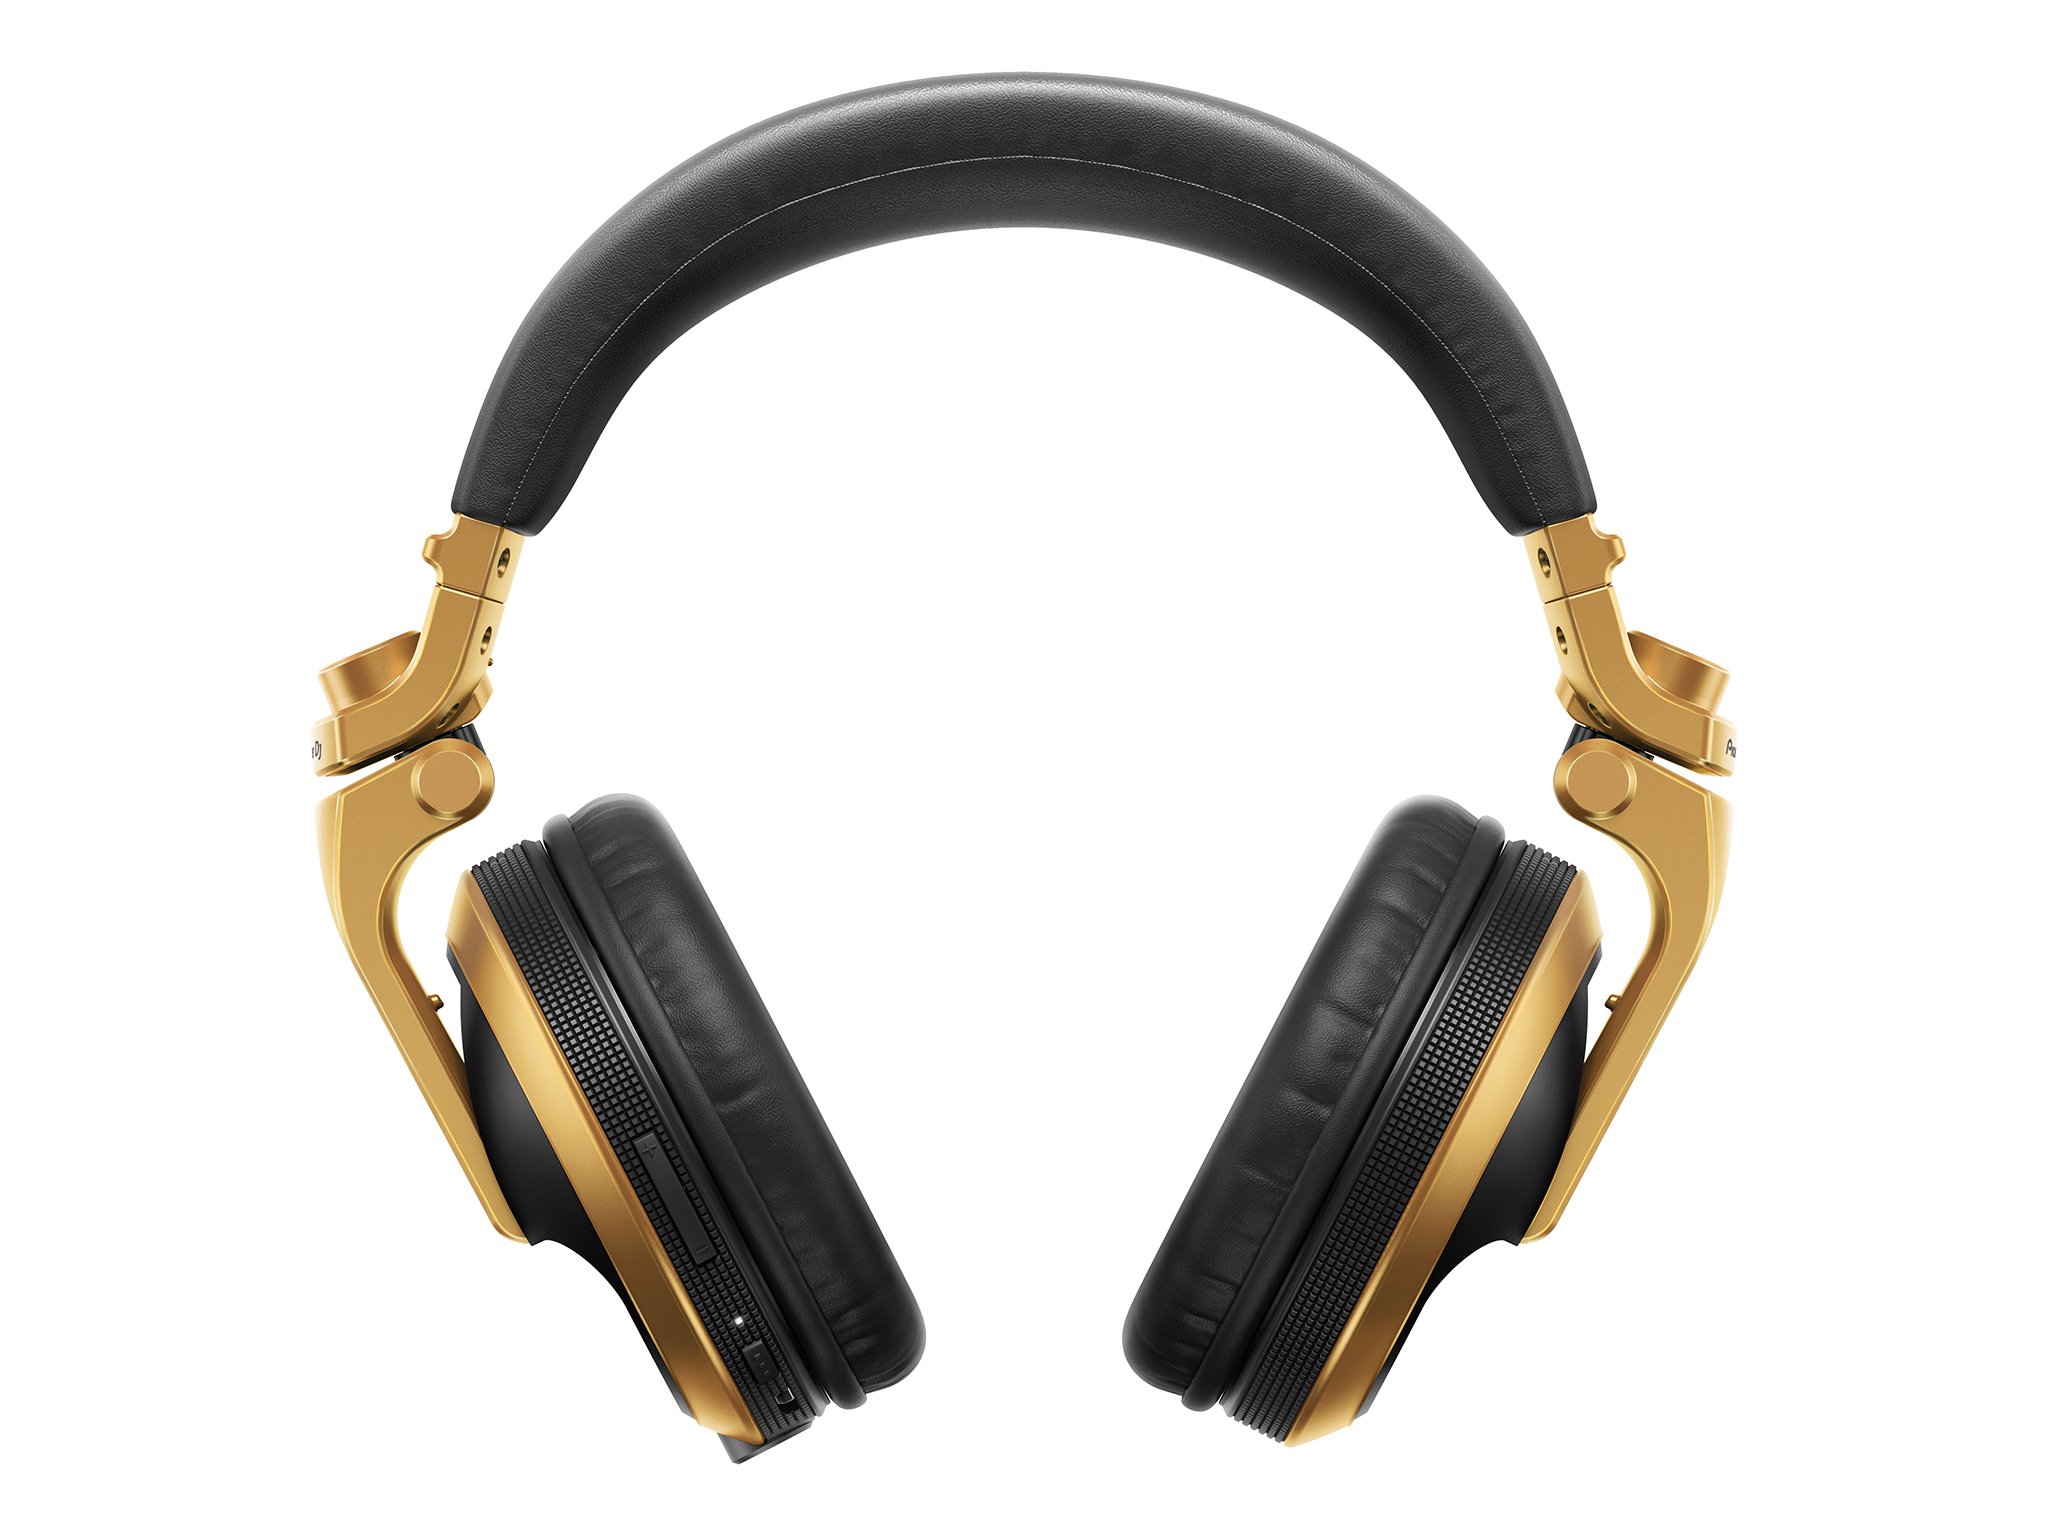 HDJ-1550 N headphones